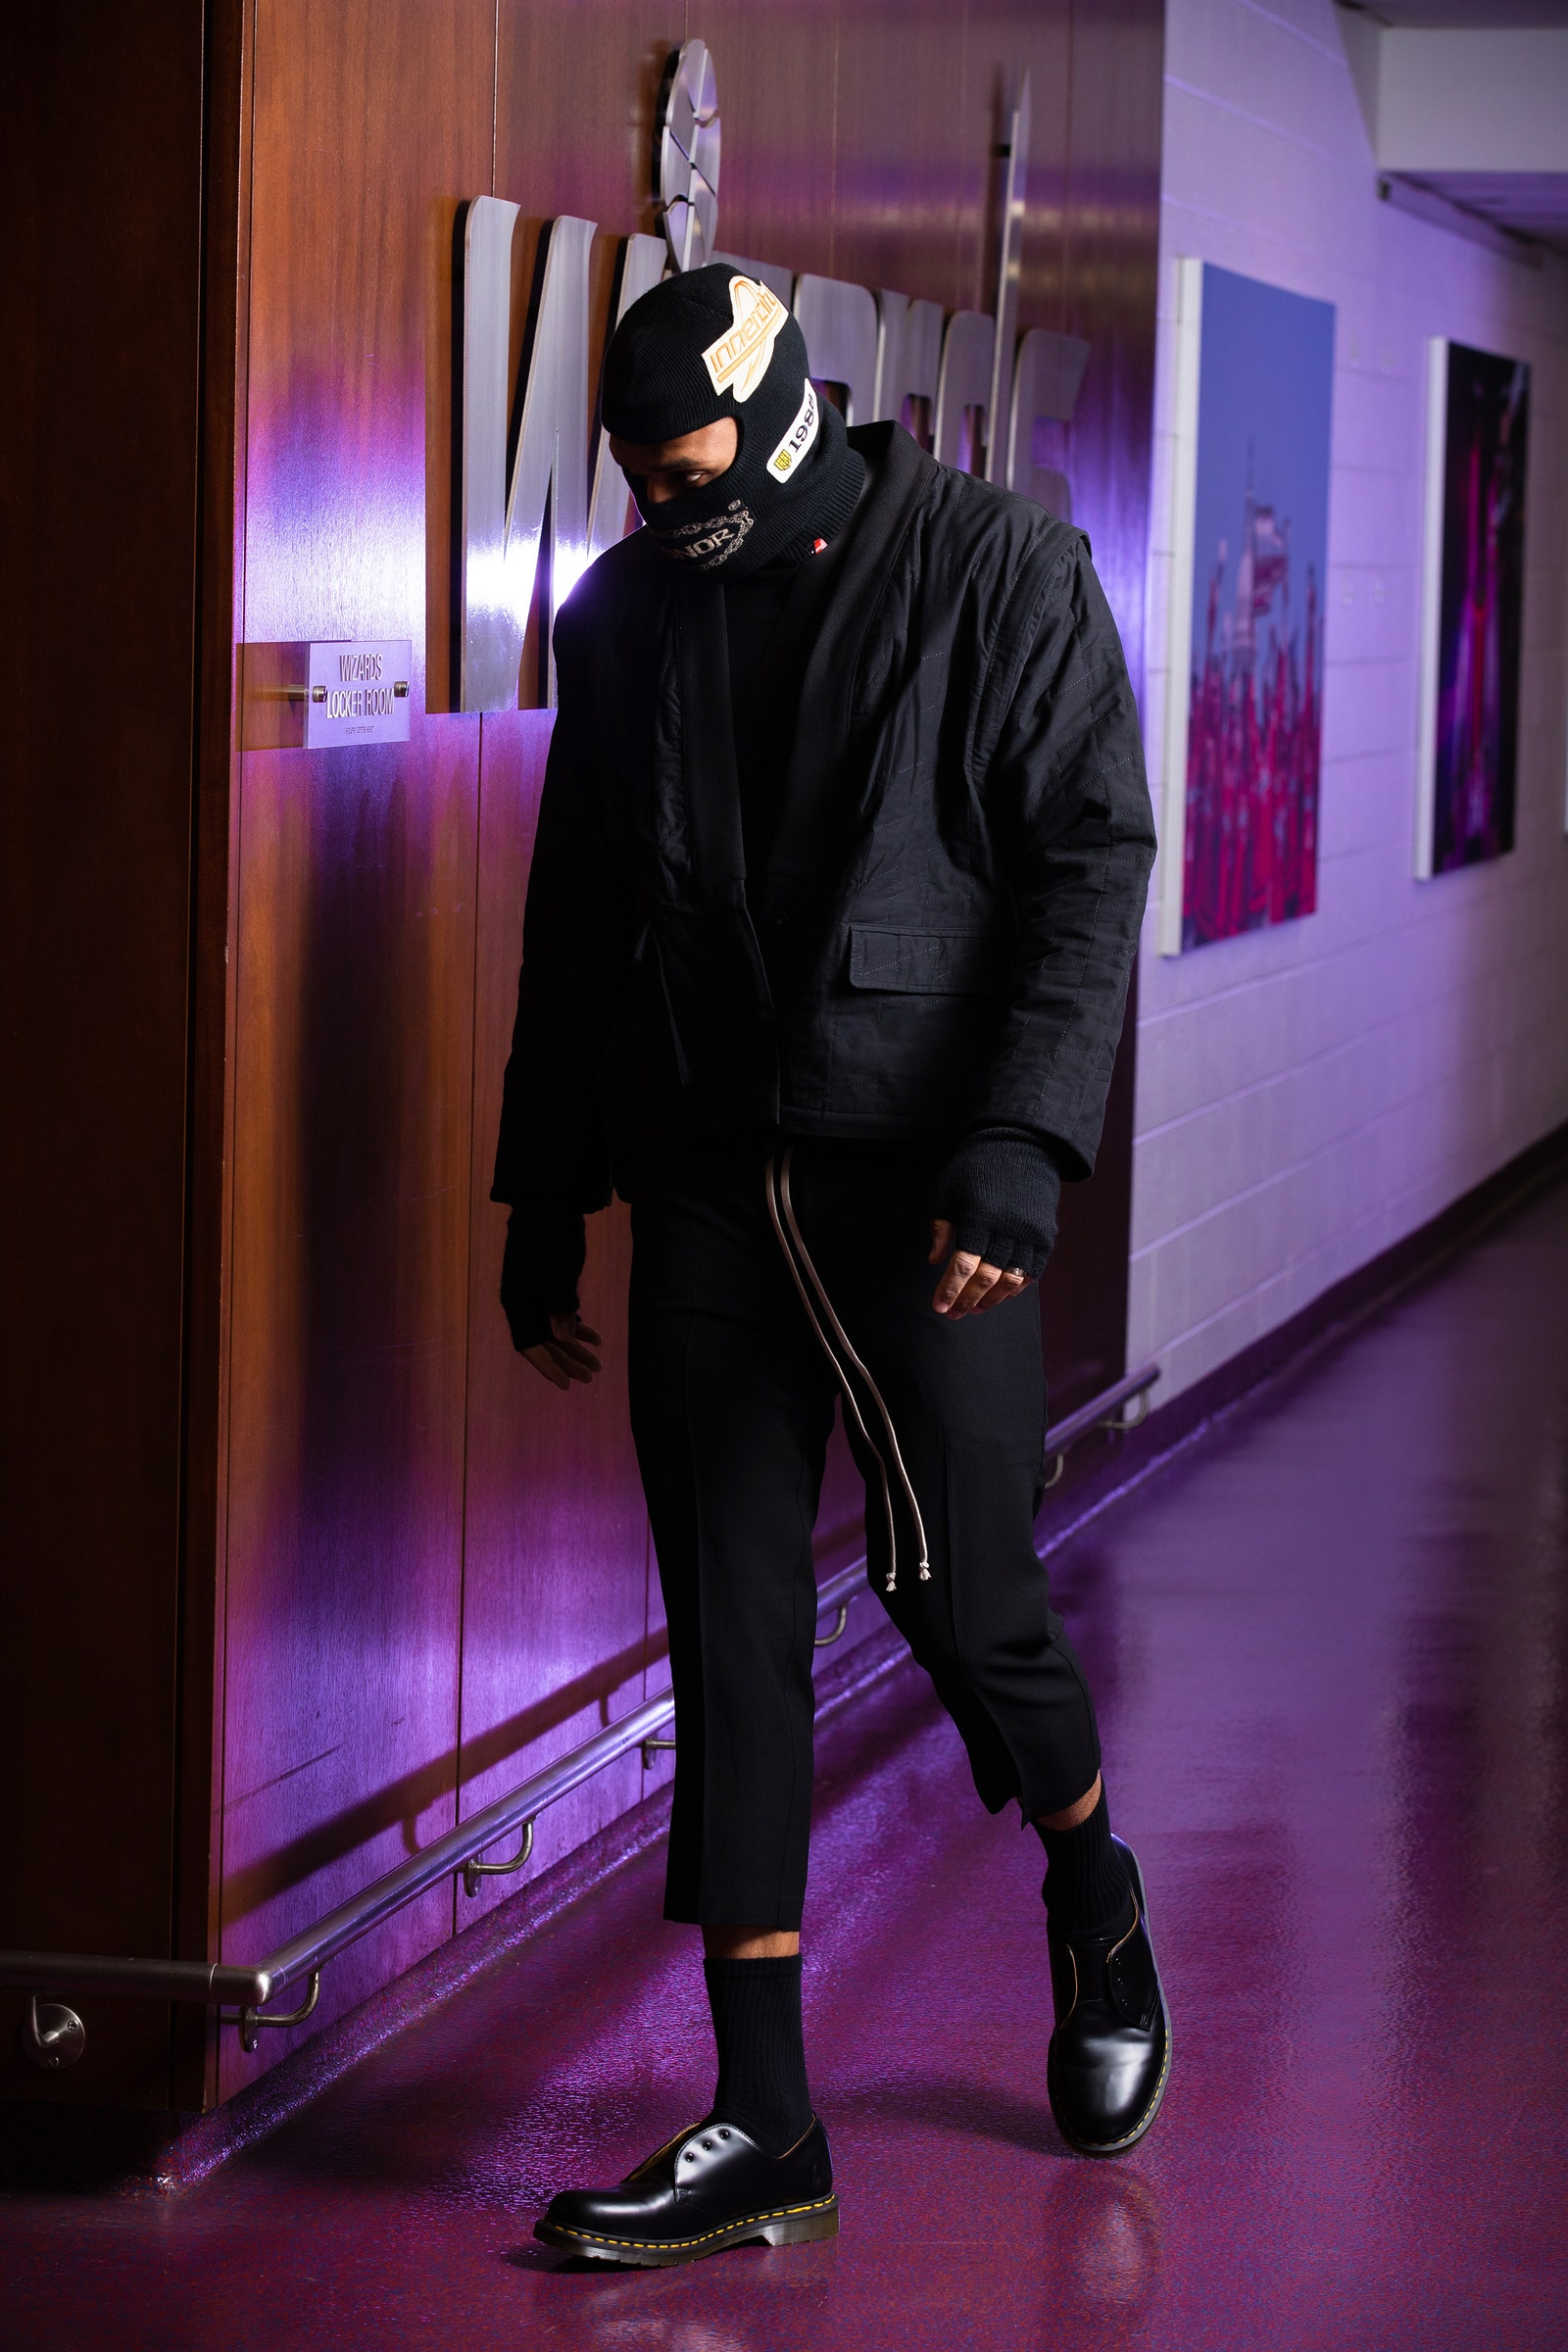 Russell Westbrook arrives for a game in Washington D.C. February 15 2021.